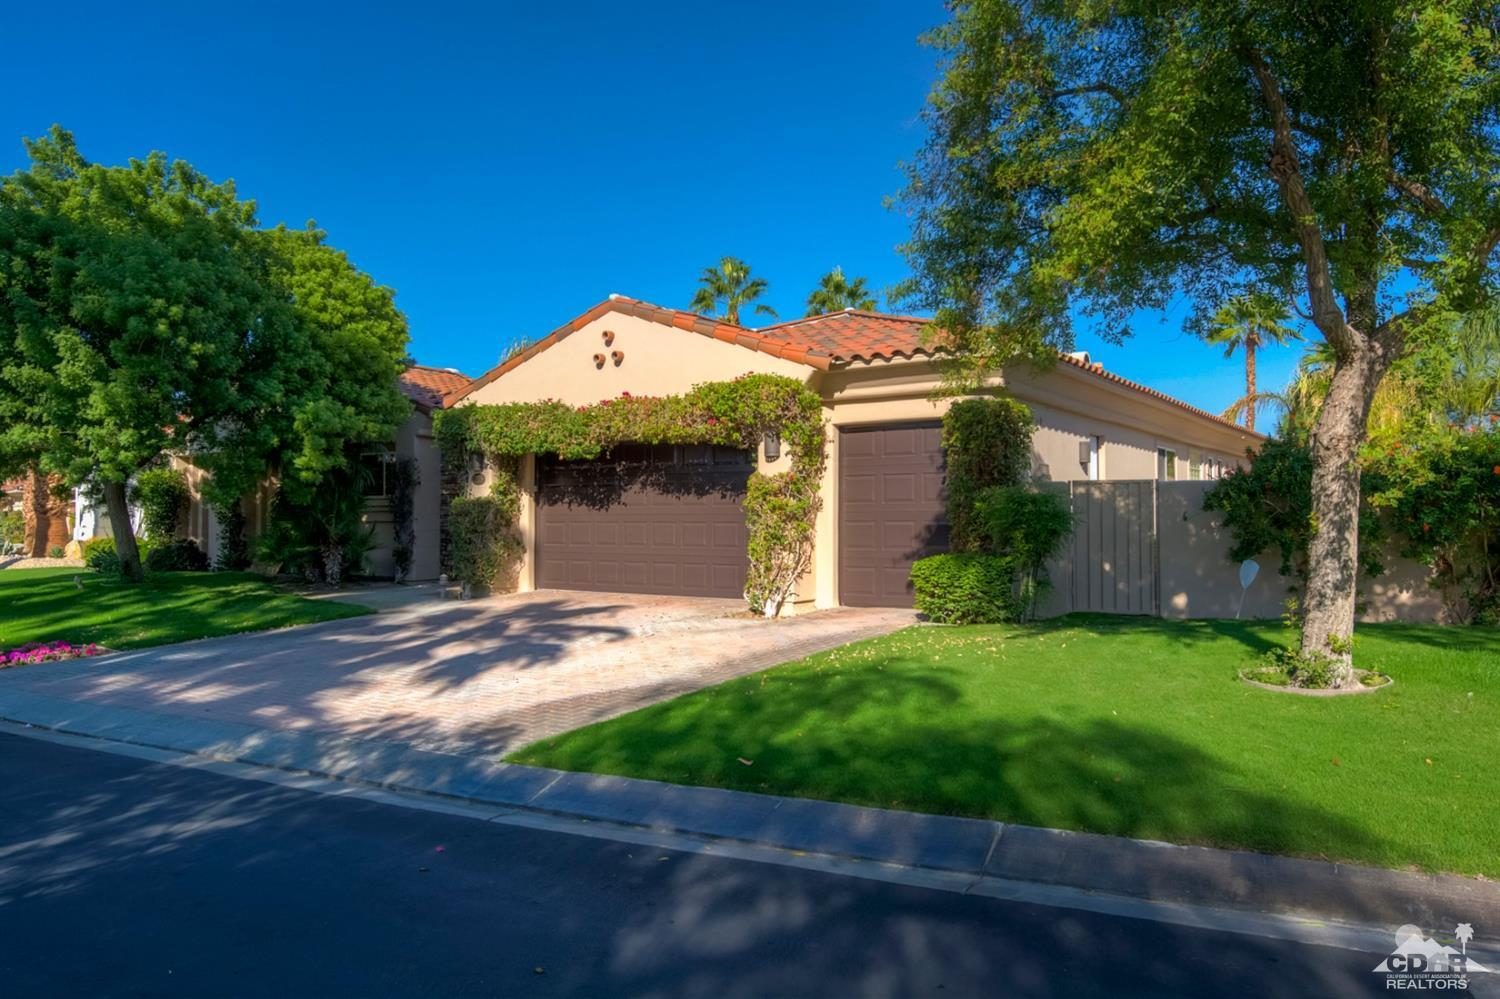 275 Loch Lomond Road, Rancho Mirage